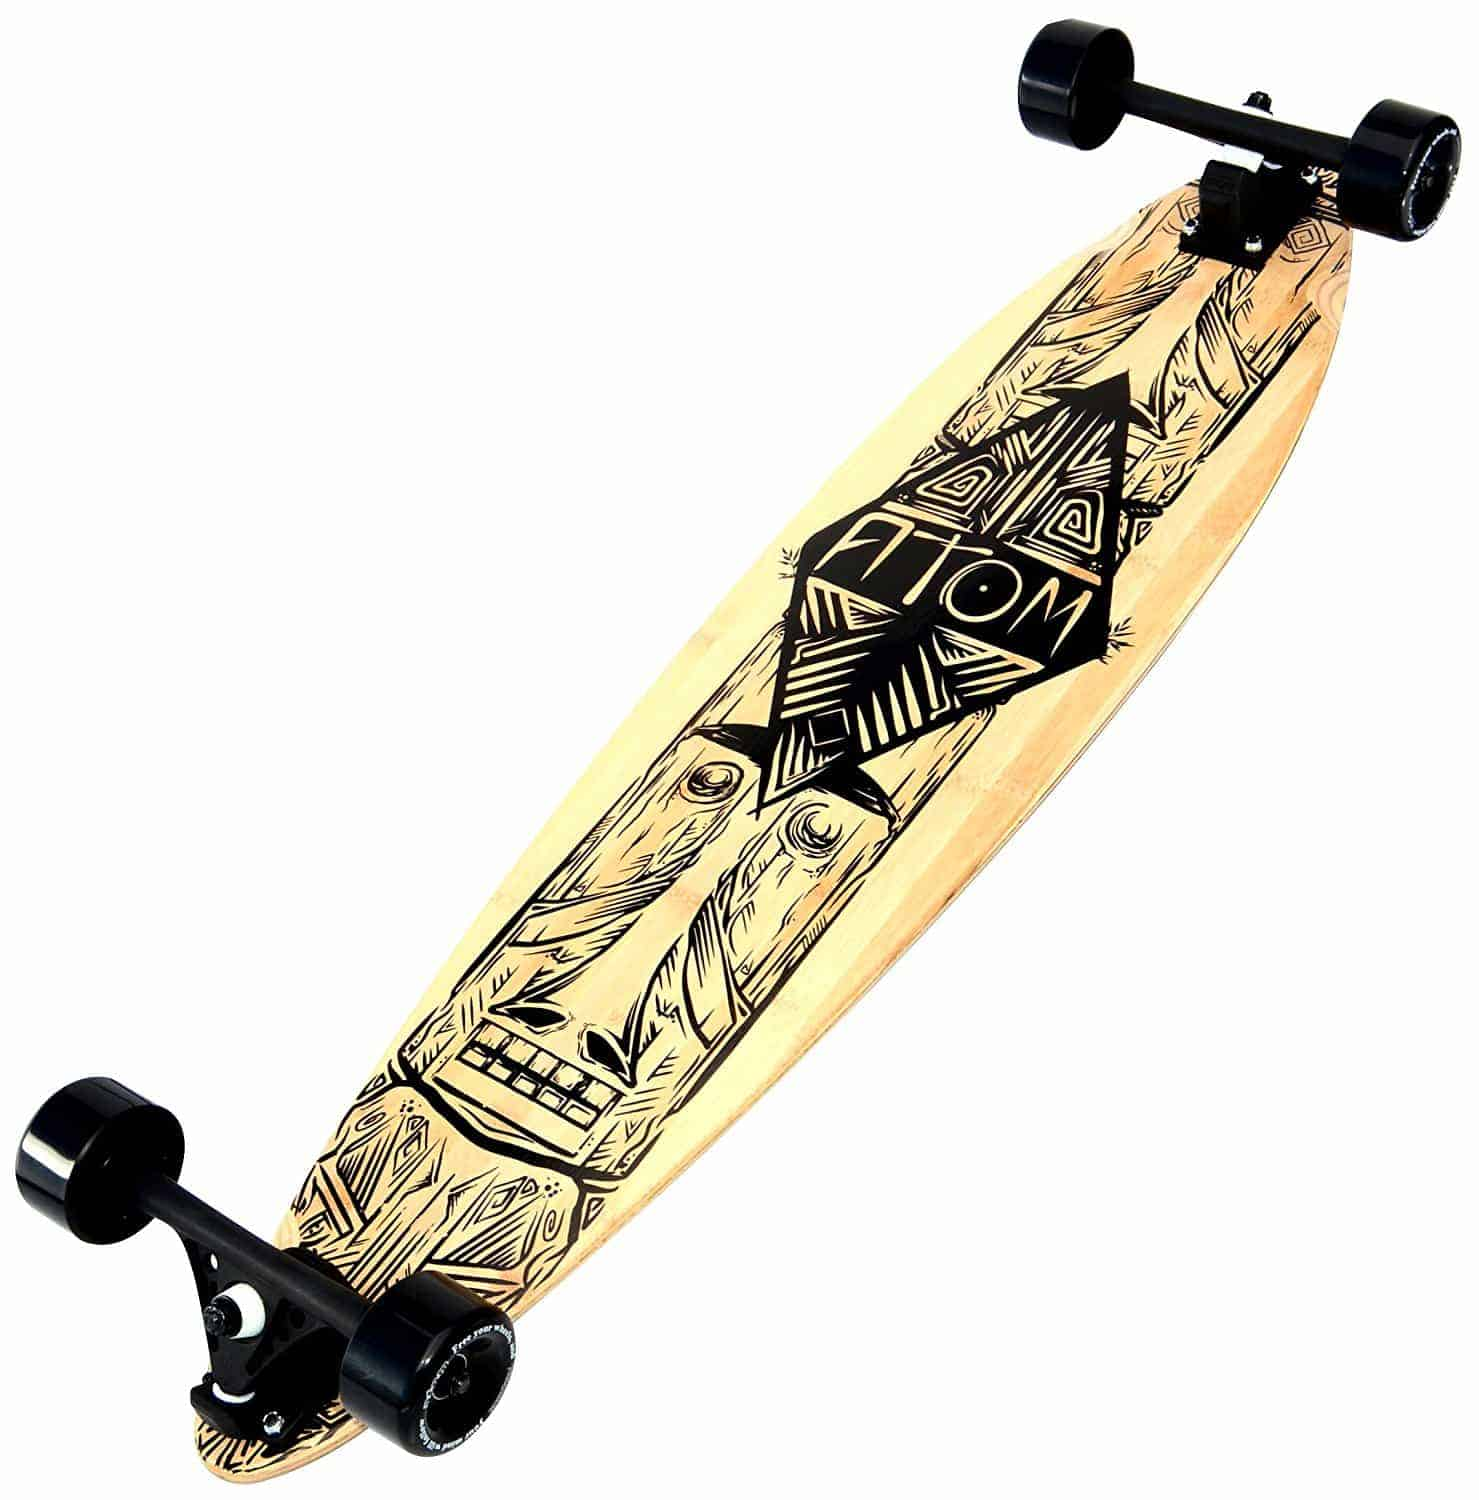 Atom Pintail Longboard Review